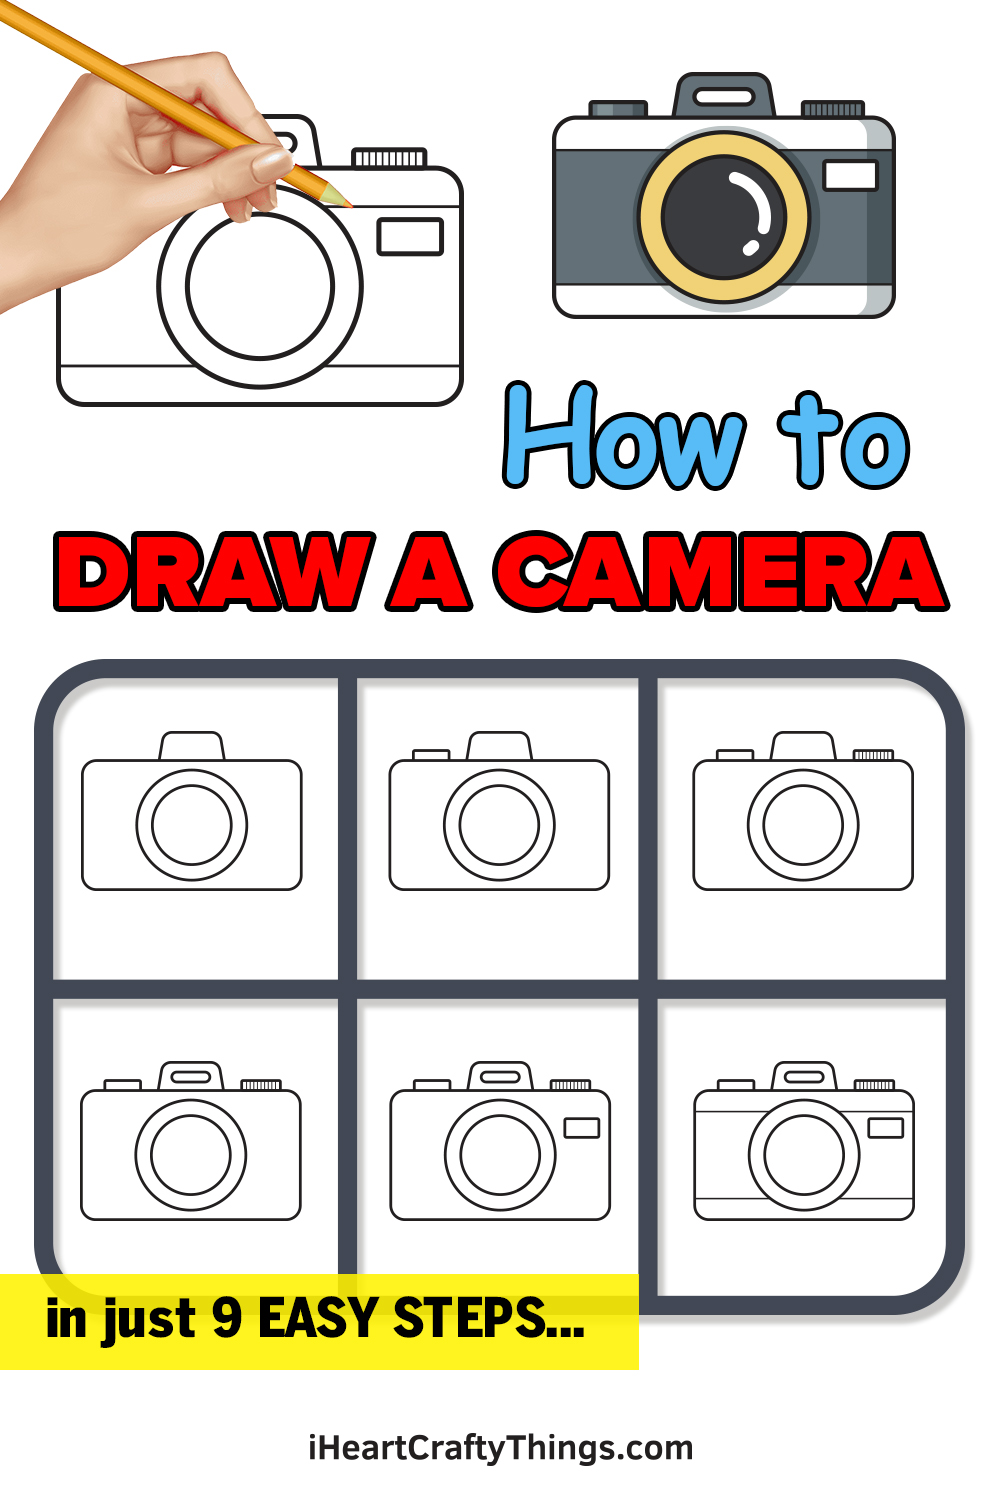 how to draw a camera in 9 easy steps